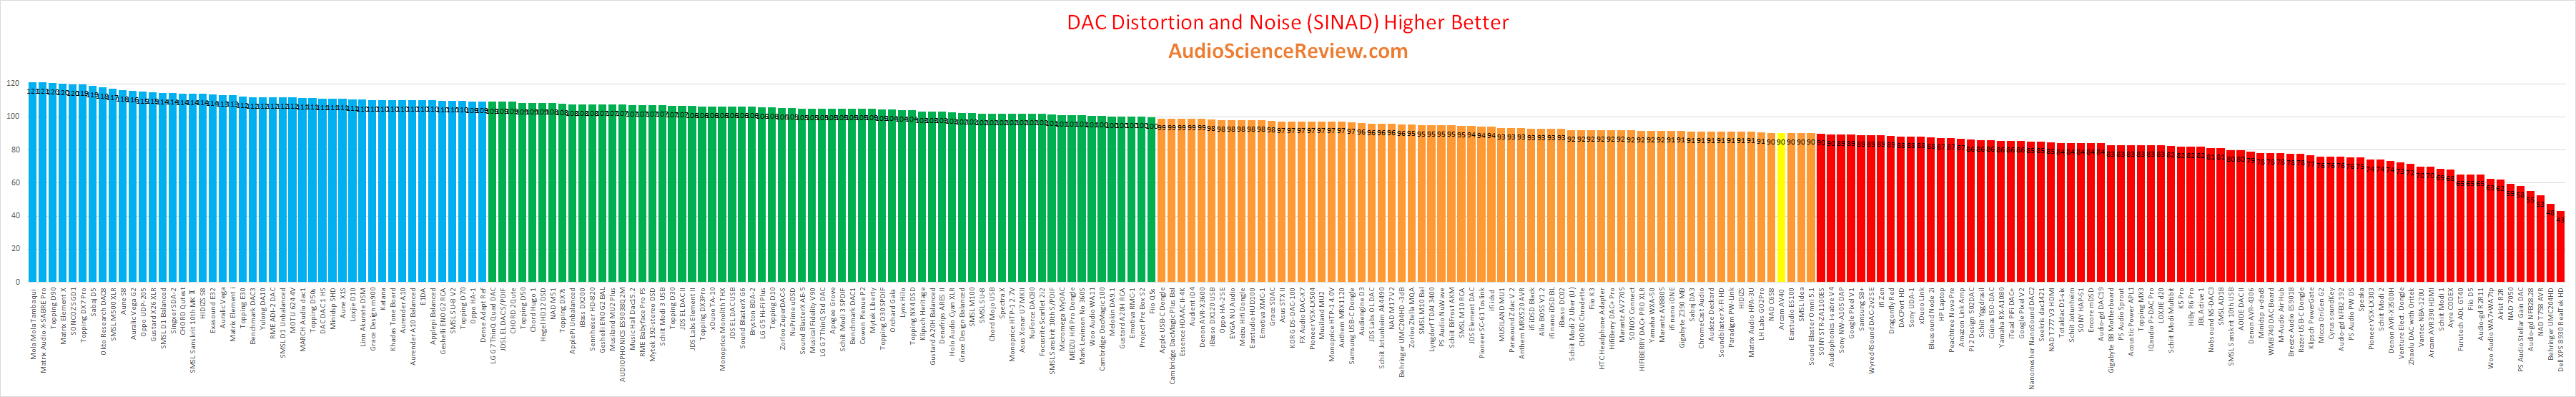 best stereo DAC Review and Measurement 2020.png